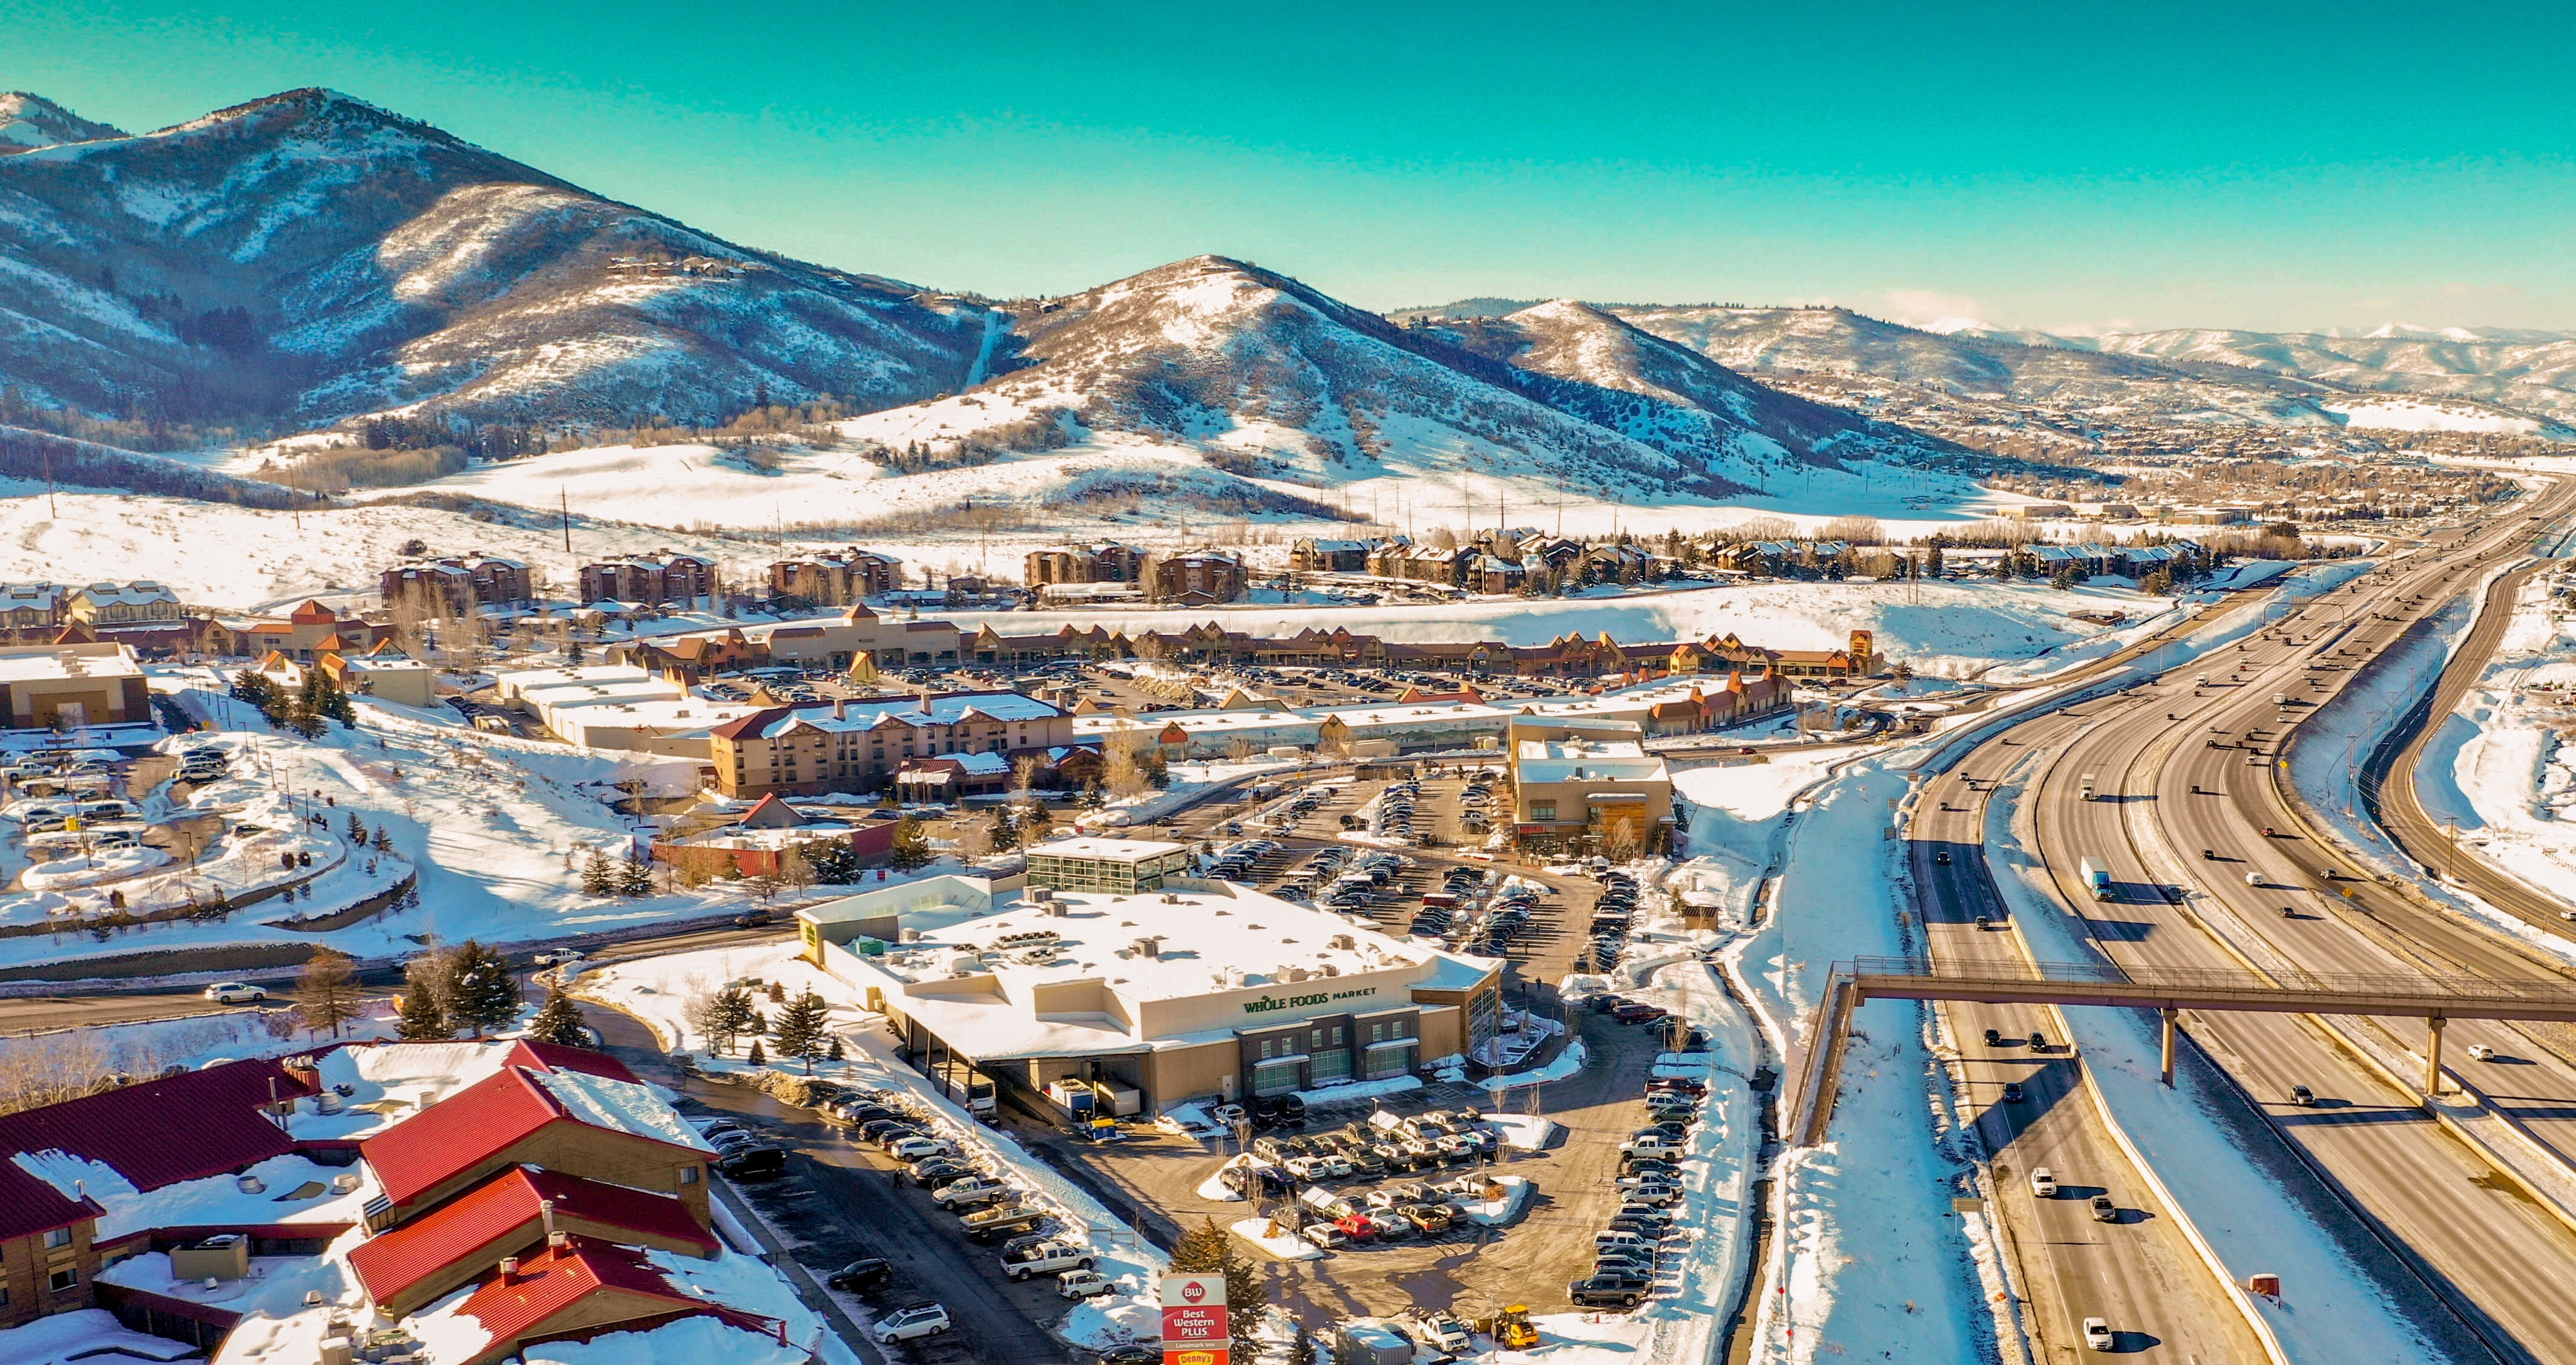 190201_CCX_PHOTO_AERIAL_SUNDANCE